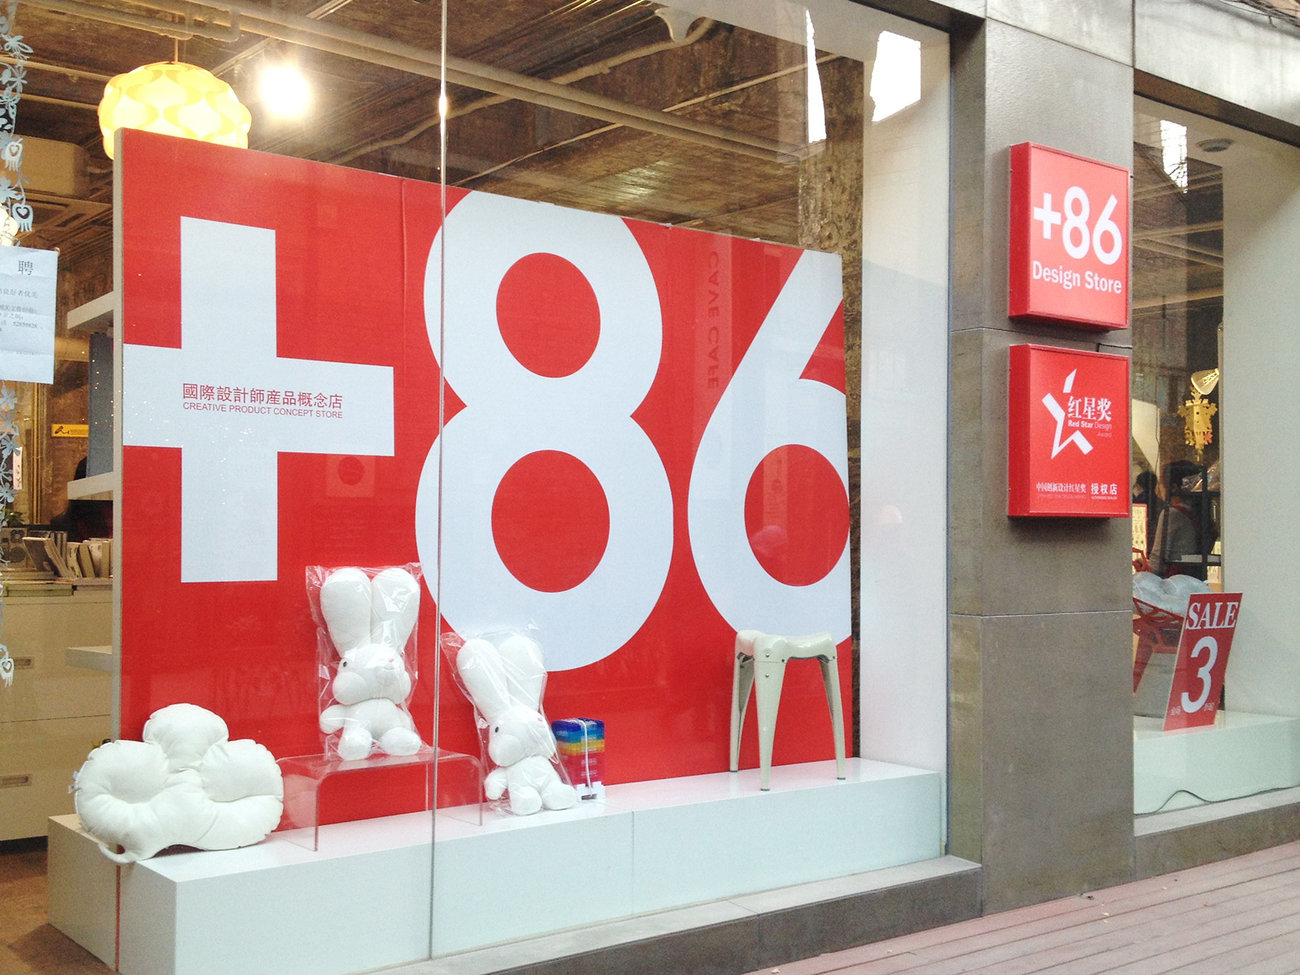 86 Design Store in Beijing